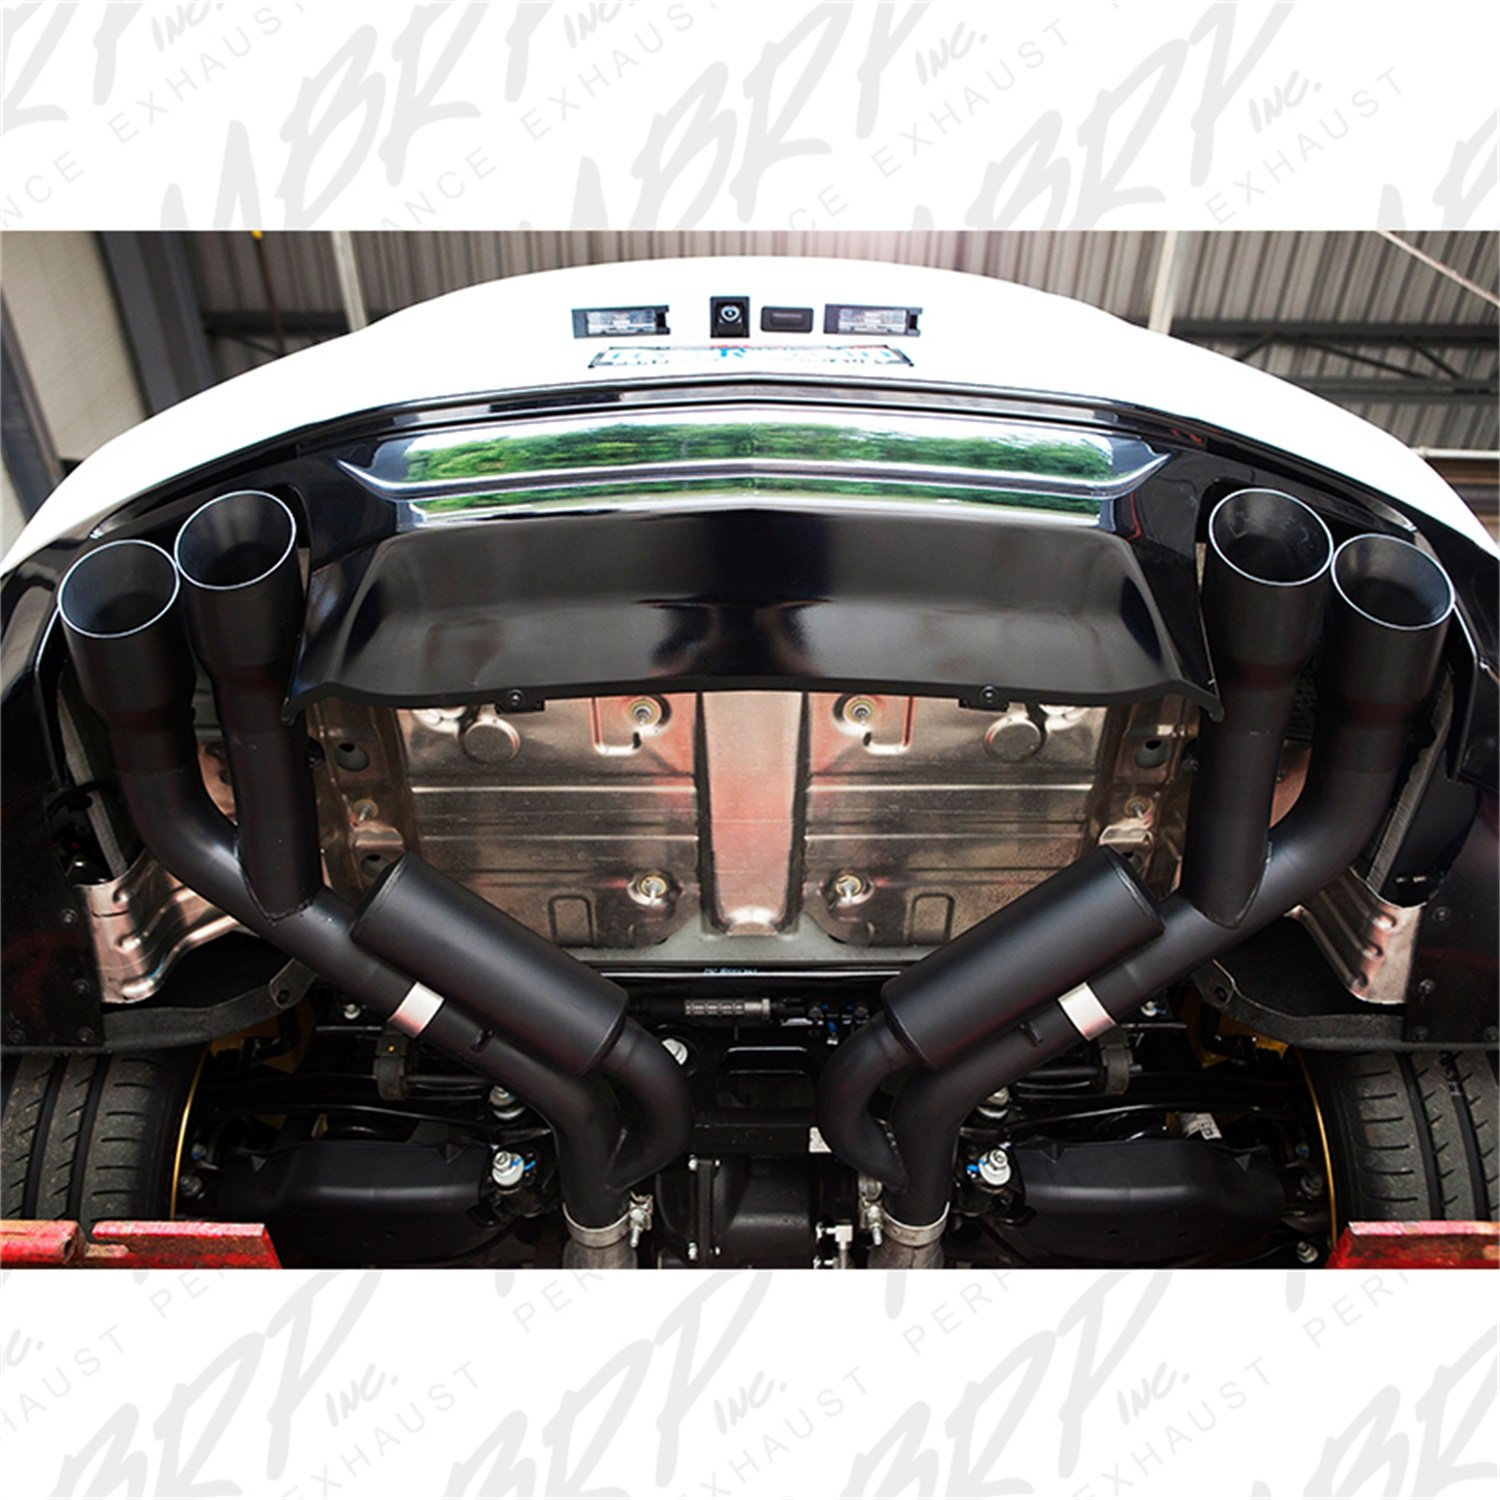 Quad 4 Dual Wall Tips Non Active Exhaust 2018-Up Ford Mustang GT MBRP S7211304 2.5 Axle Back T304